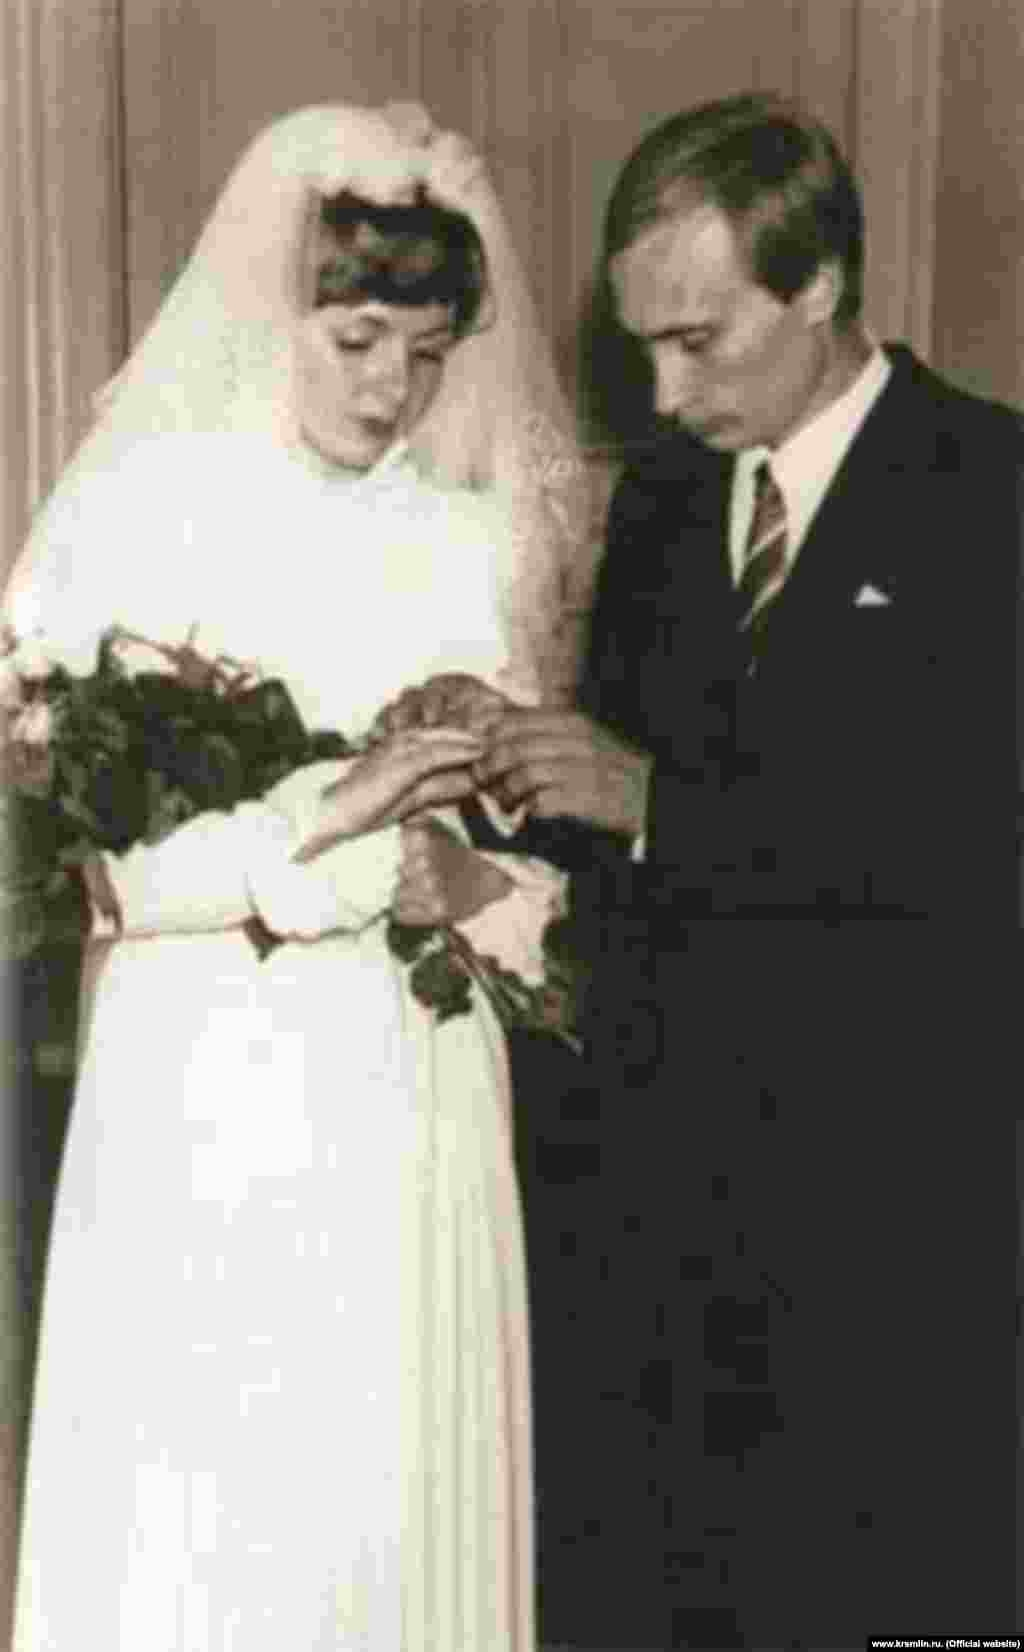 Vladimir Putin and Lyudmila Shkrebneva on their wedding day, July 28, 1983